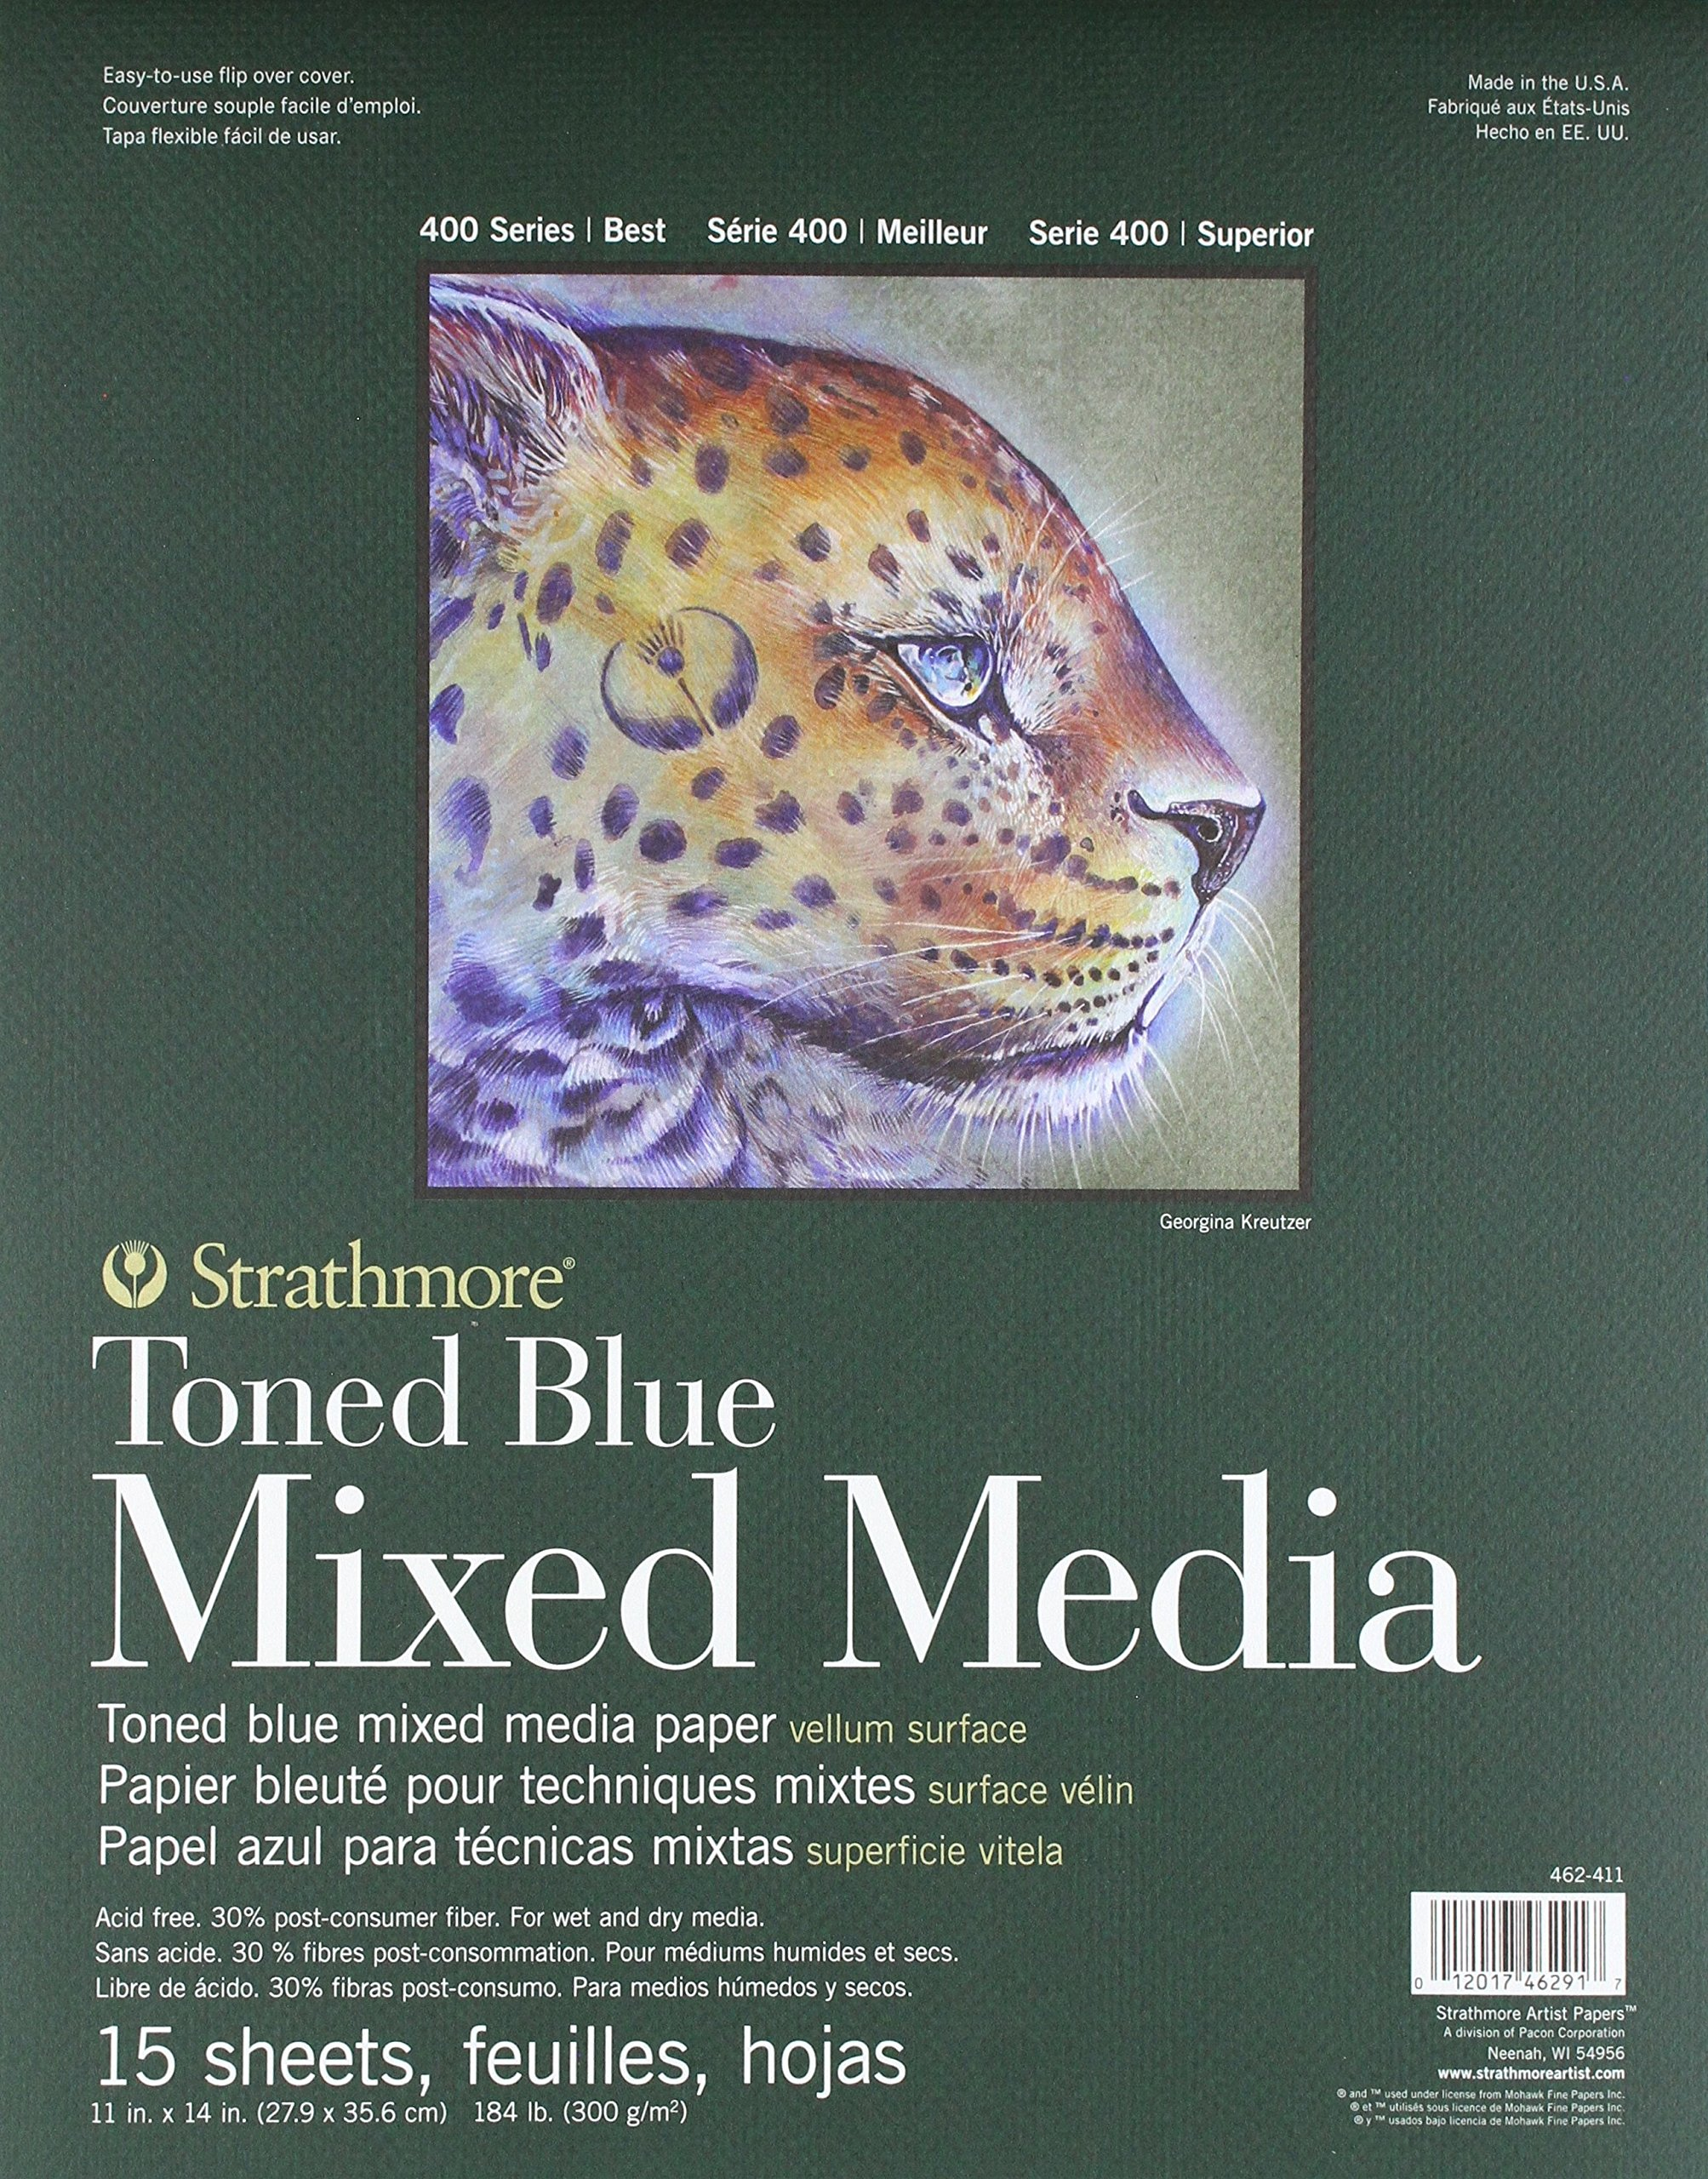 400 Series Toned Blue Mixed Media Pad, 11''x14'' Glue Bound, 15 Sheets per Pad by Strathmore